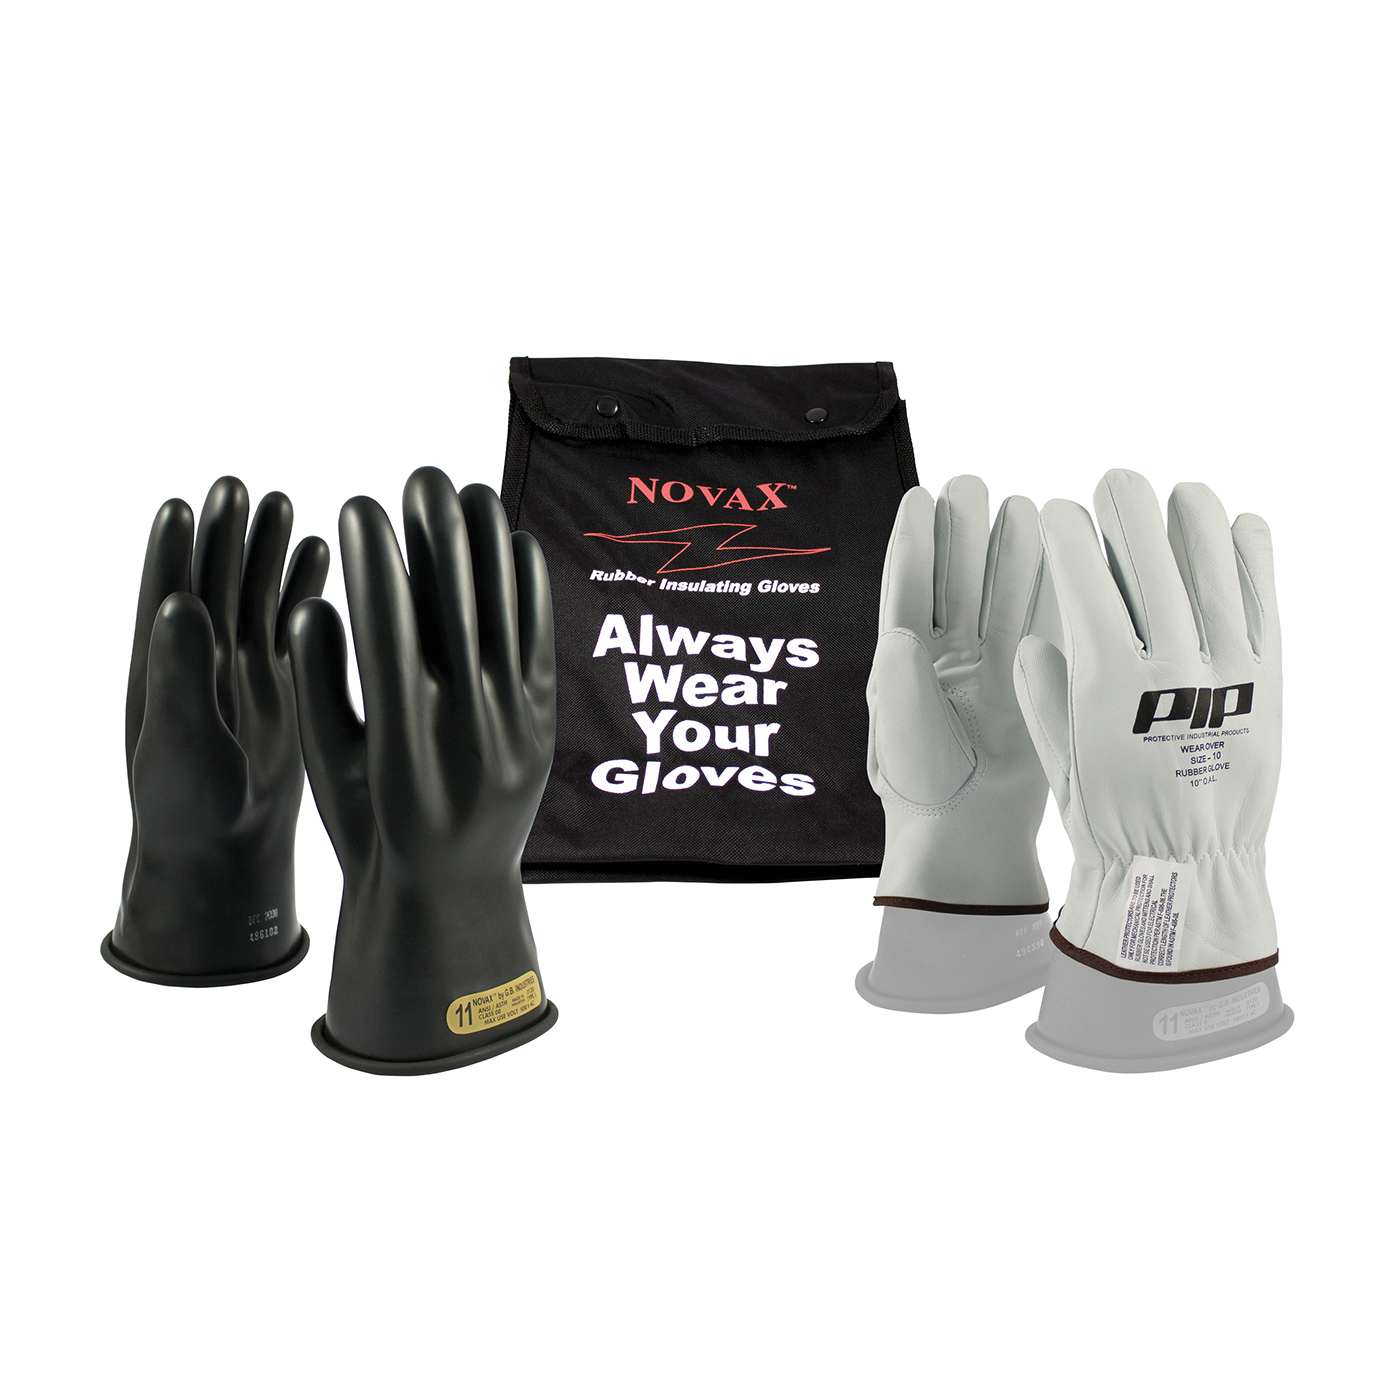 Novax® 150-SK-00/10-KIT Insulating Unisex Electrical Safety Gloves Kit, SZ 10, Goatskin Leather/Natural Rubber, Black/Natural, 11 in L, ASTM Class: Class 00, 500 VAC, 750 VDC Max Use Voltage